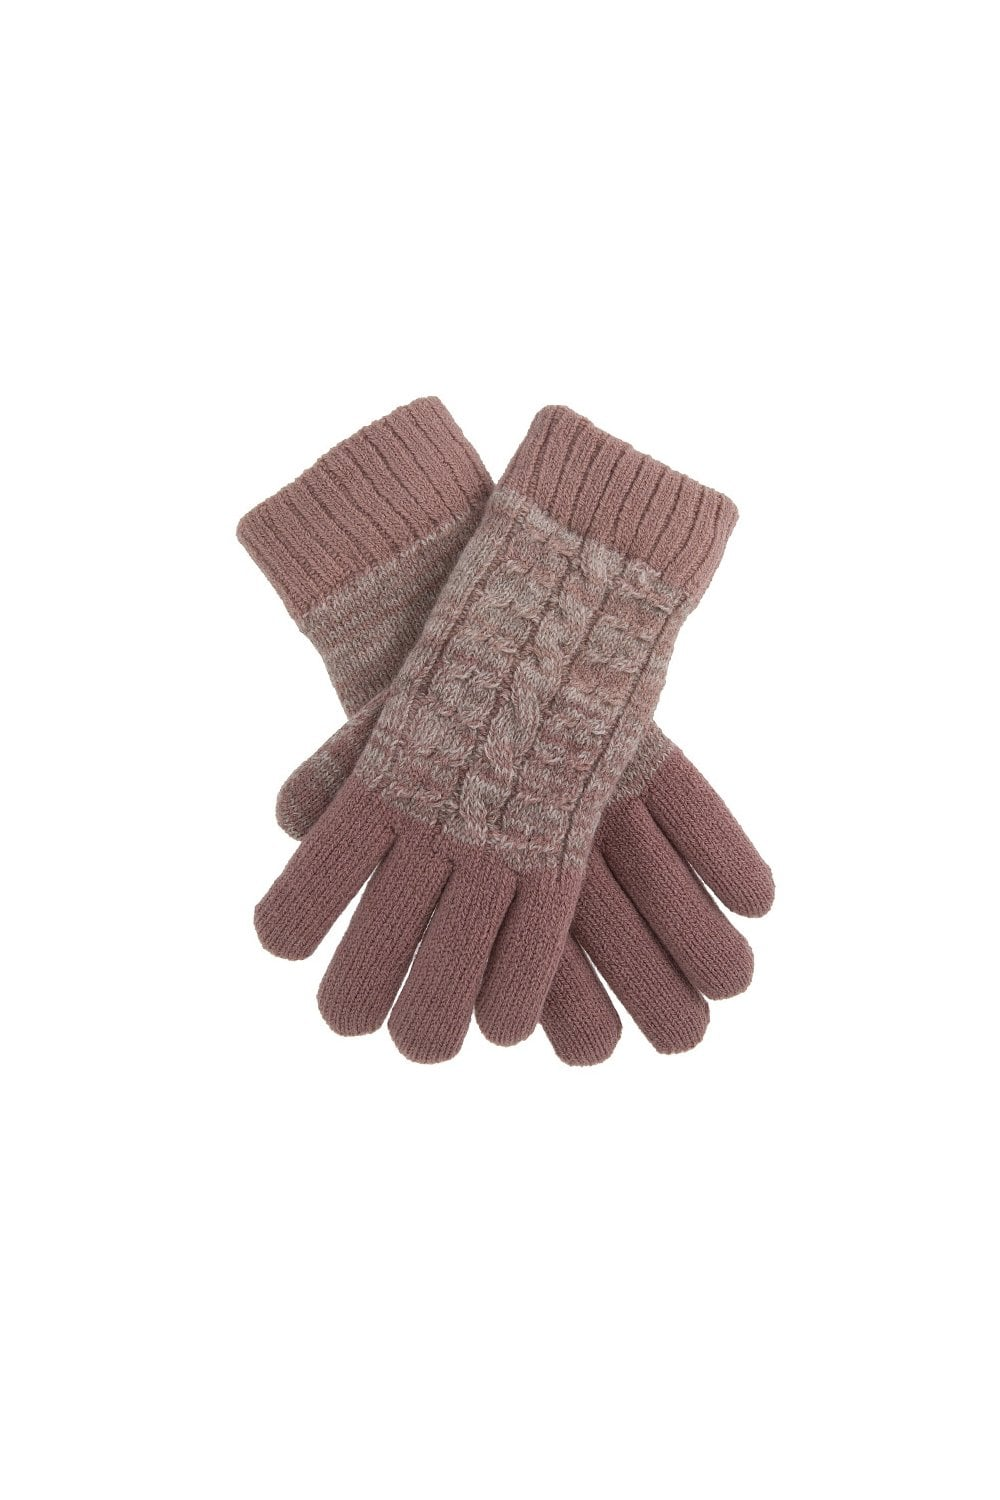 933d8da2a52d09 Dents Womens Ombre Cable Knit Gloves - Pink - Womenswear from ...